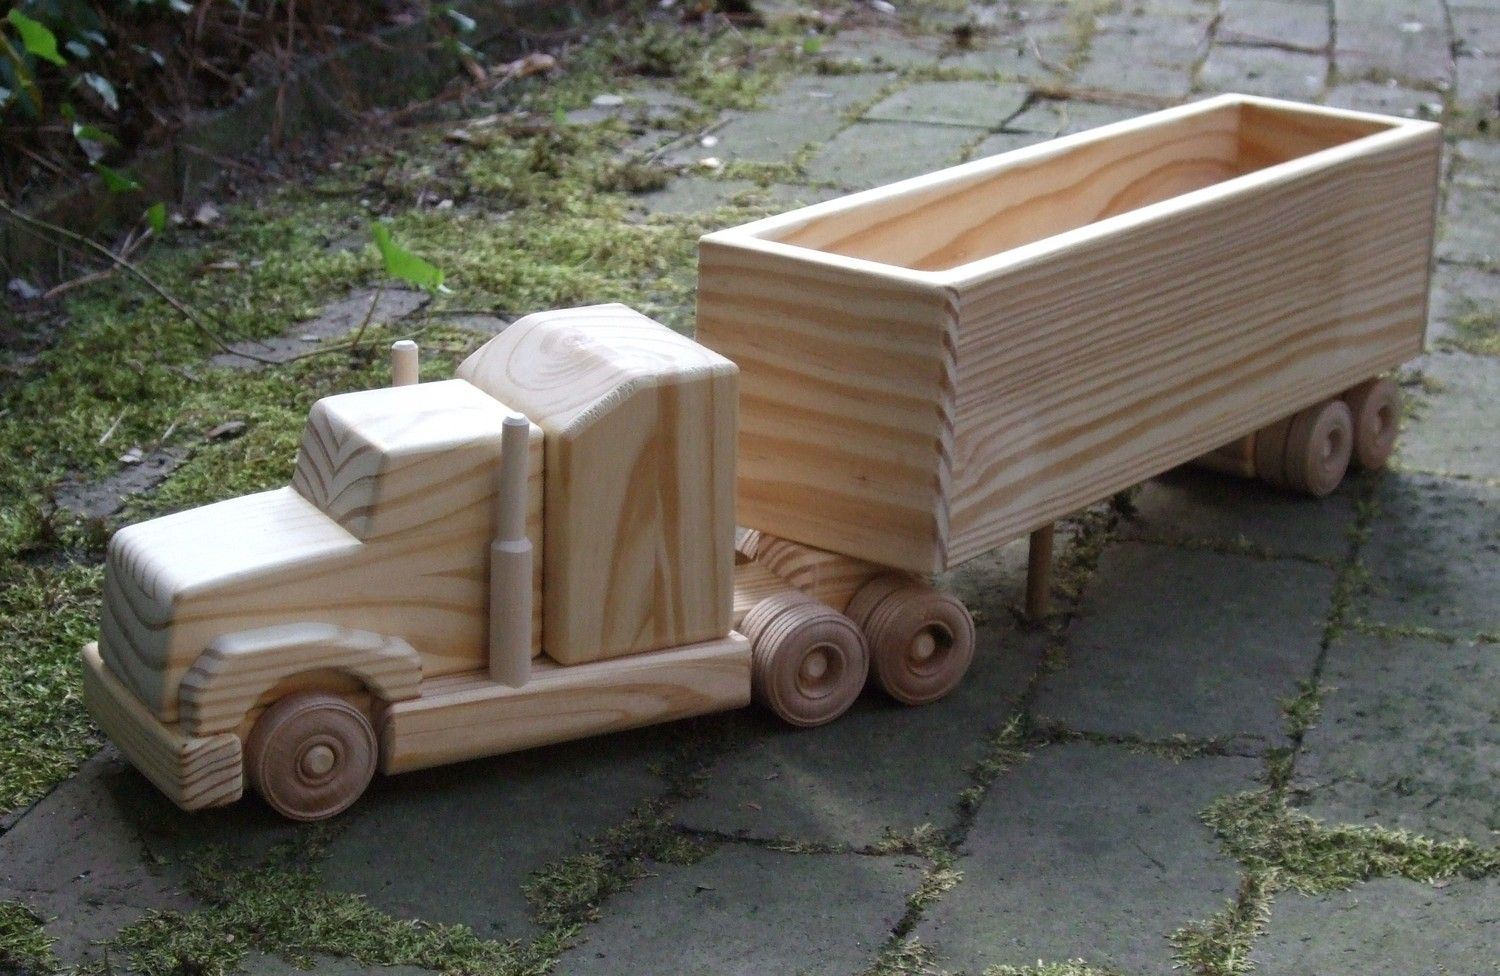 wooden toy truckmyfathershandsllc on etsy | projects to